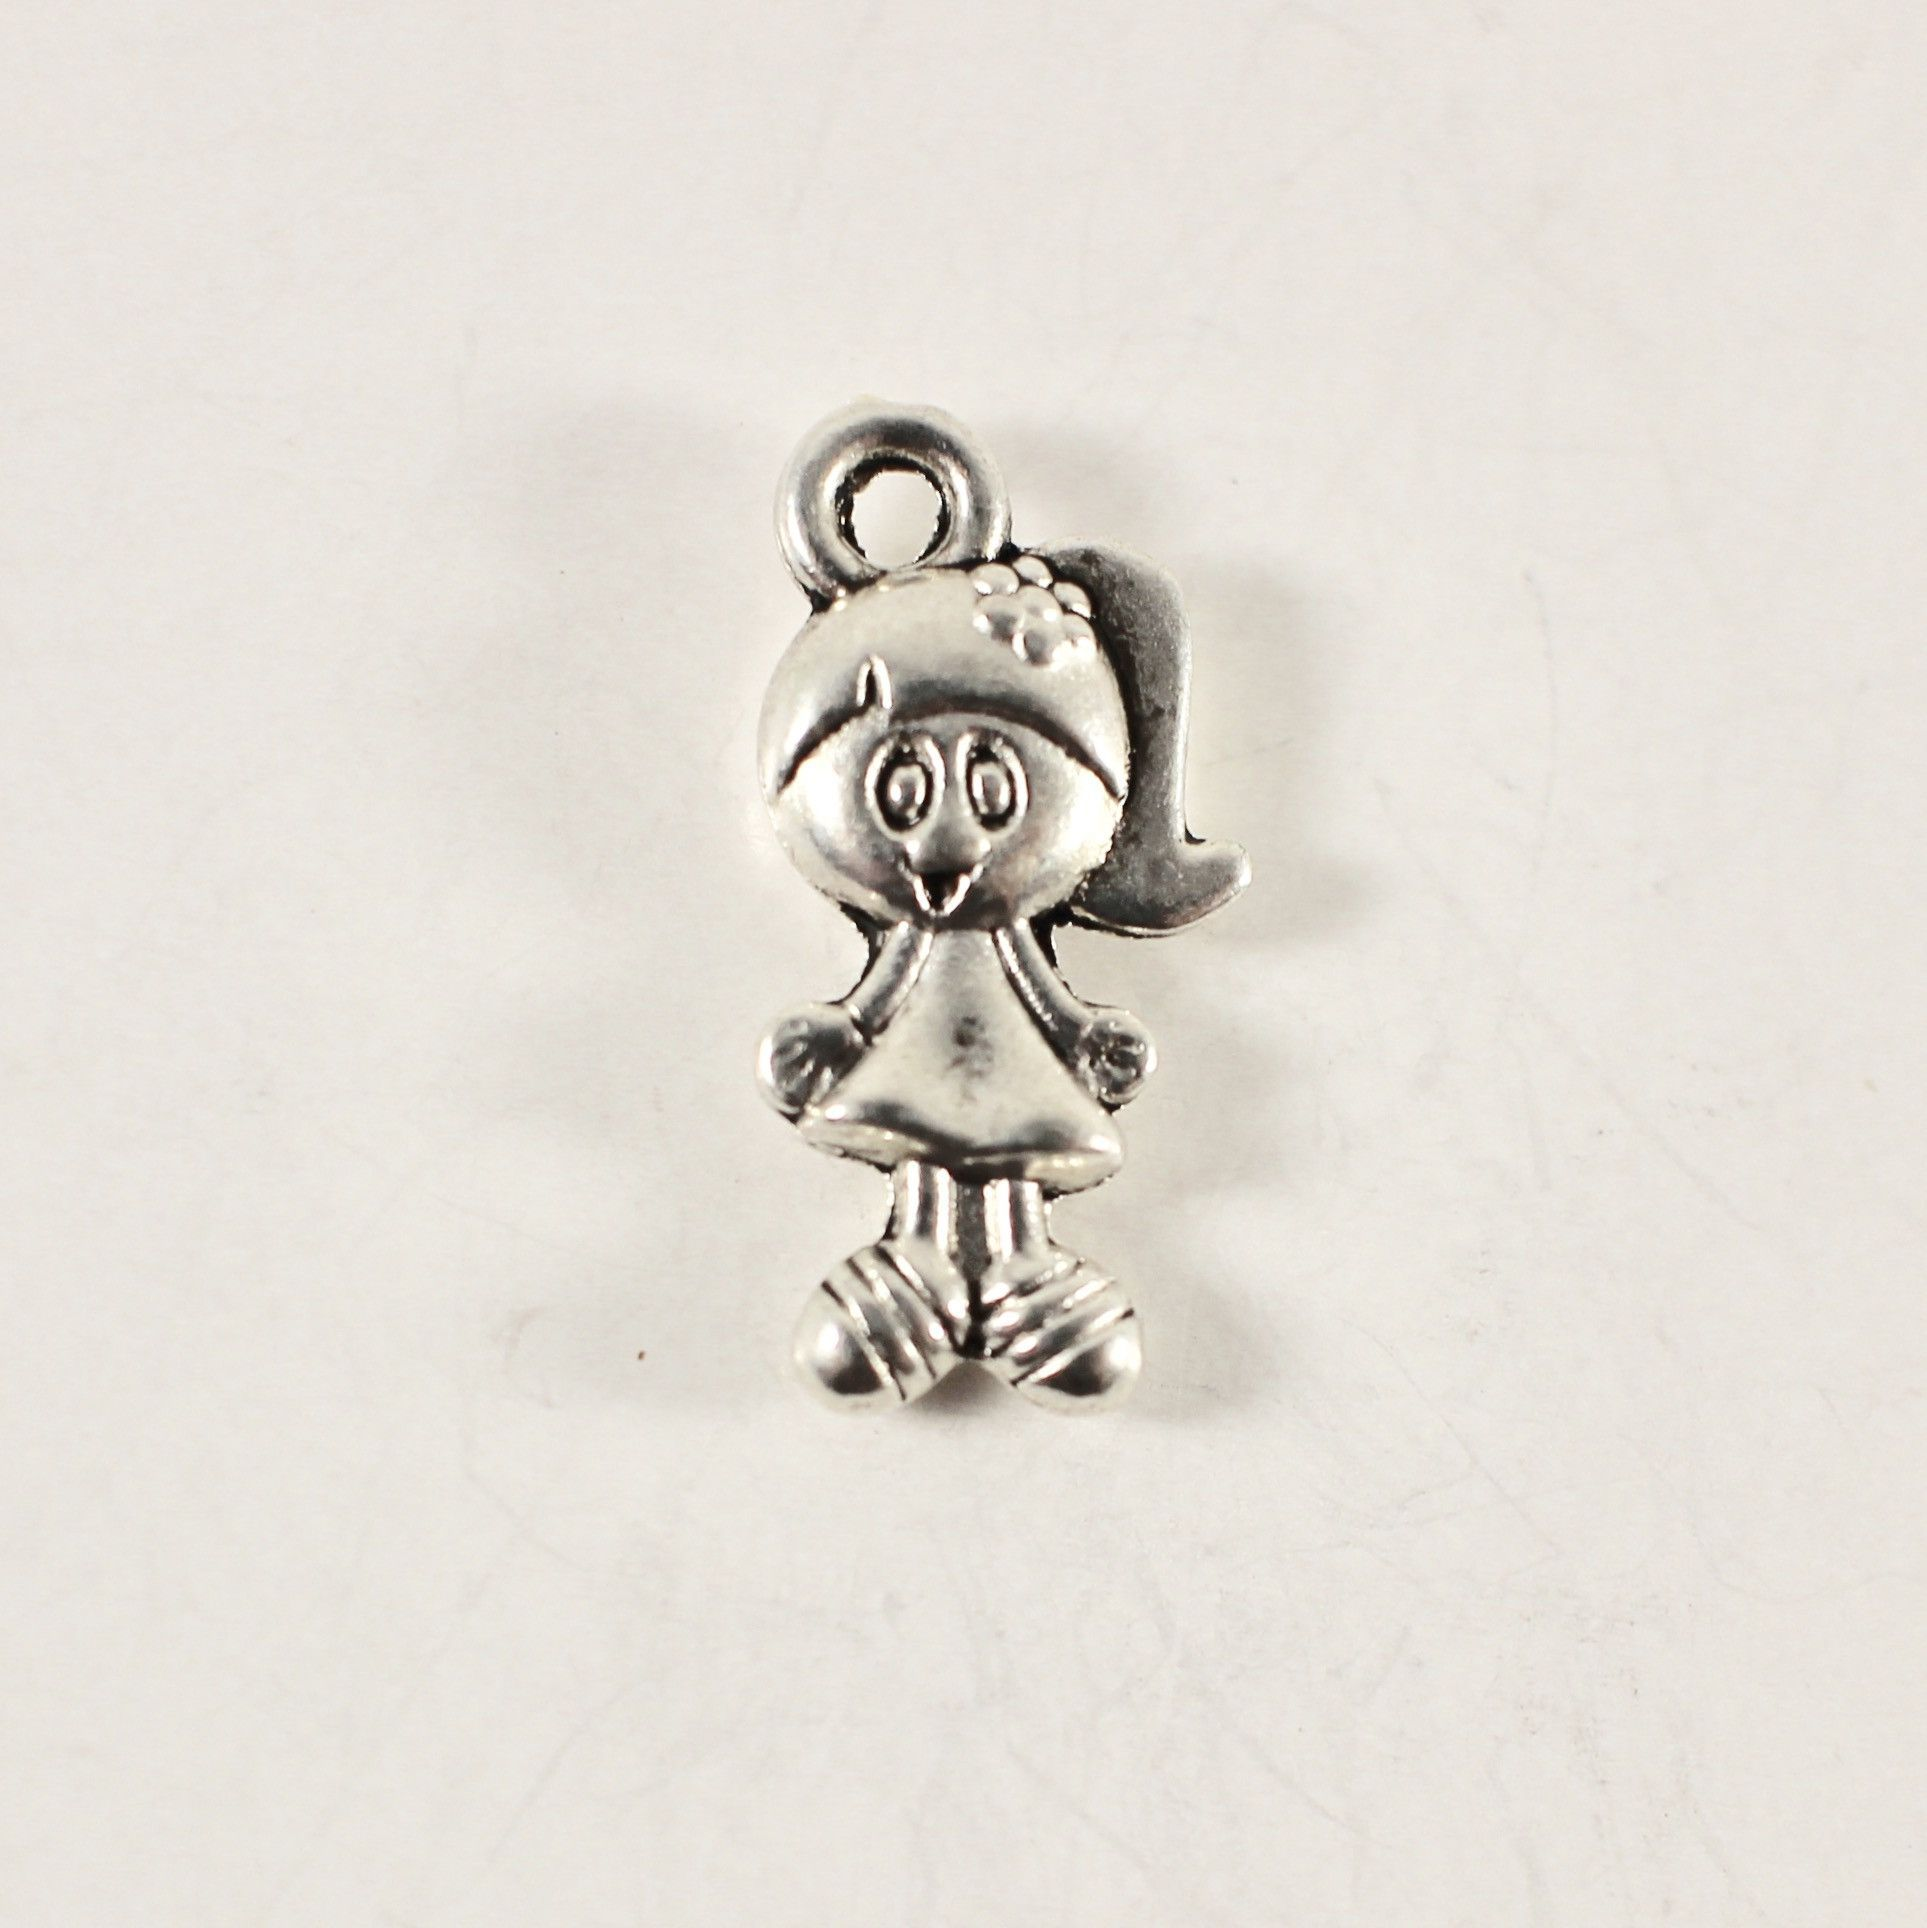 Antiqued Silver Charms